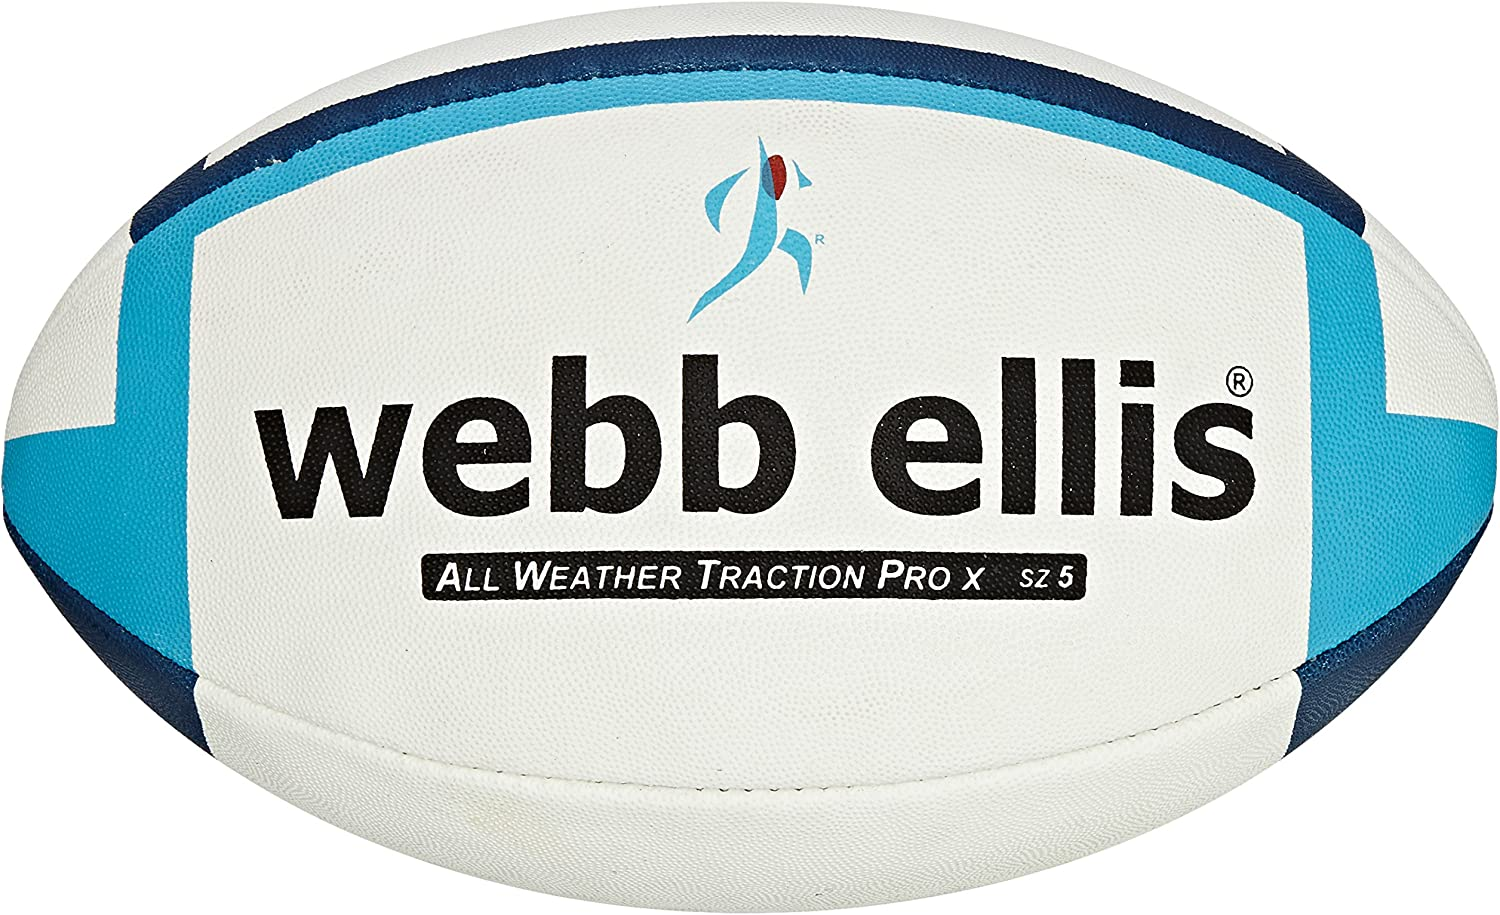 Webb Ellis All Weather Traction Pro Recommendation X - Pr Ball Navy Match Sale item Rugby